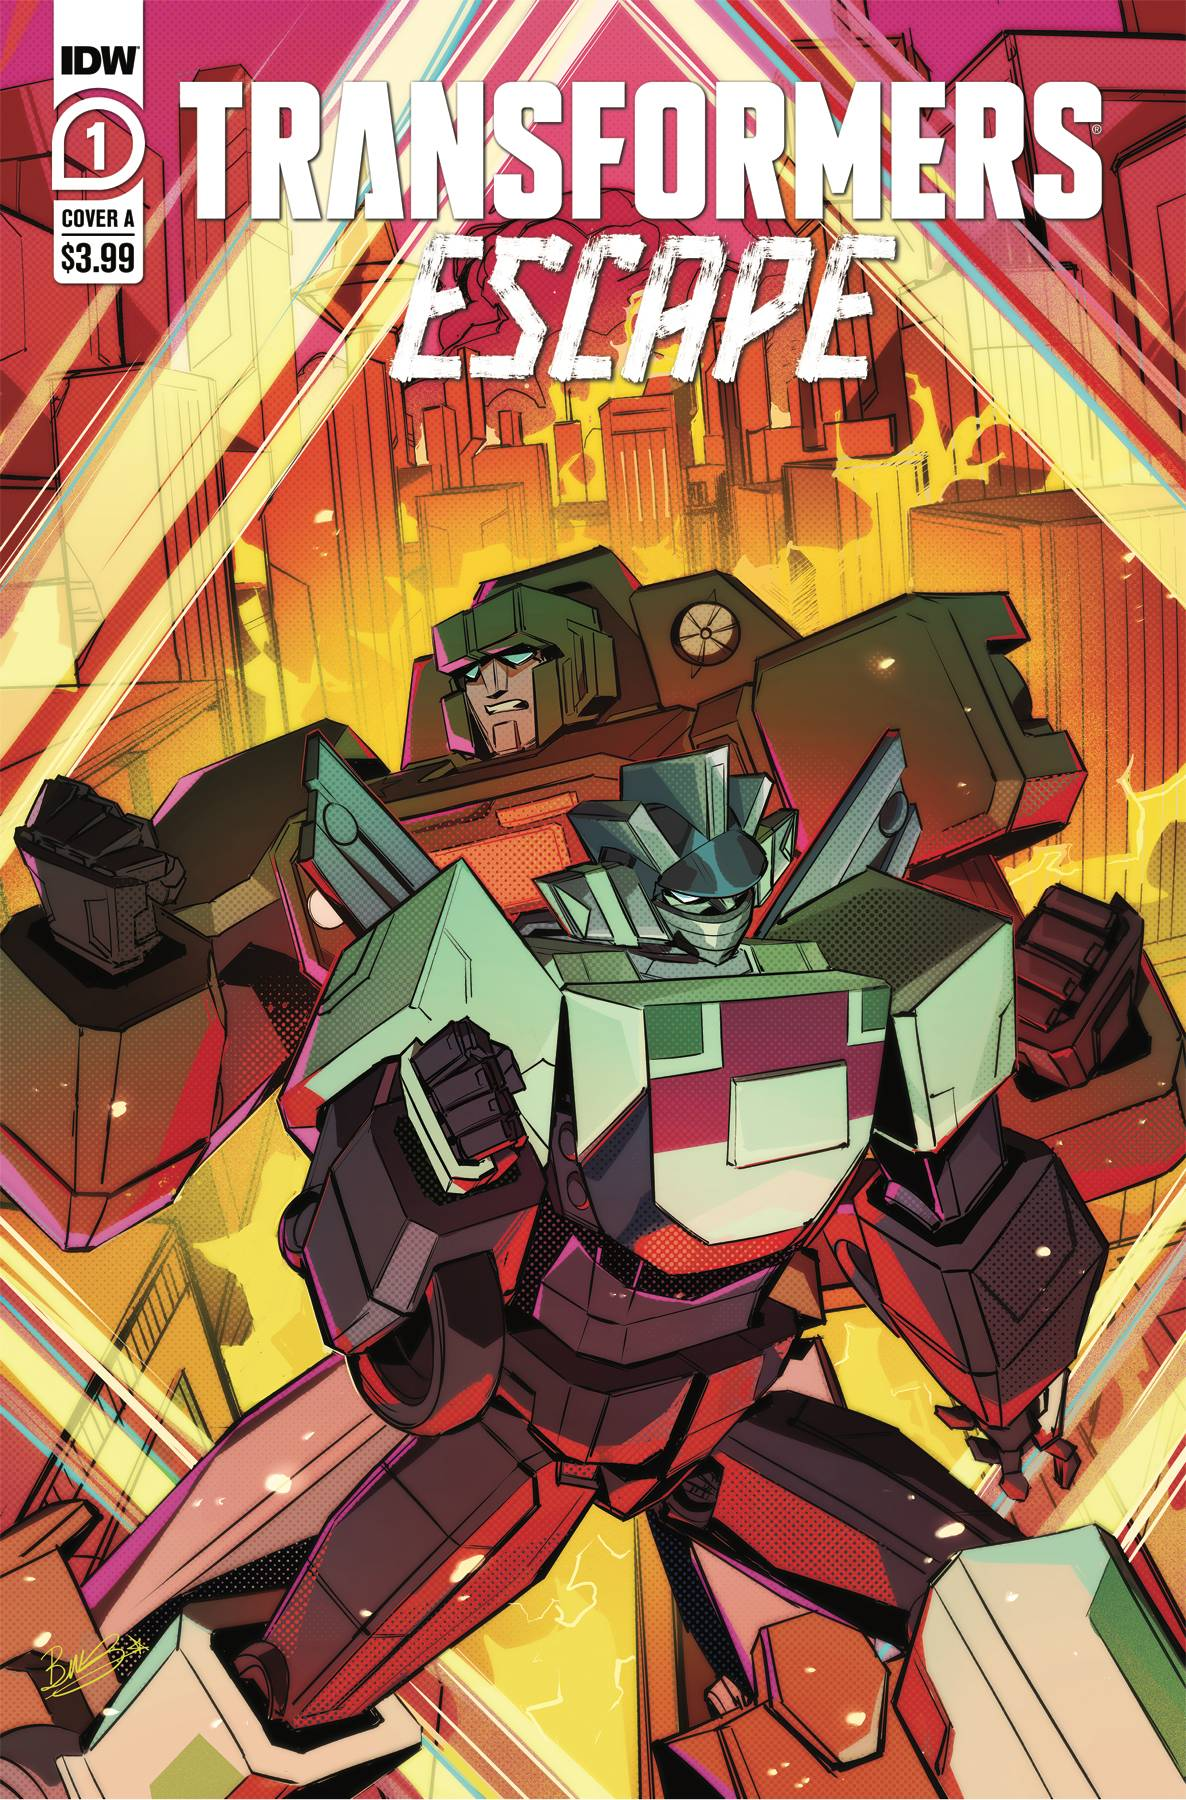 TRANSFORMERS ESCAPE #1 (OF 5) CVR A MCGUIRE-SMITH